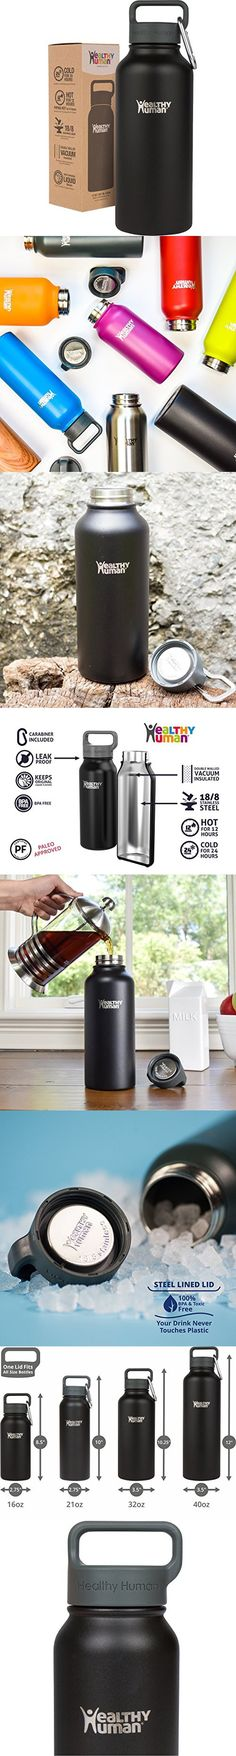 Healthy Human 32 oz Water Bottle - Cold 24 Hrs, Hot 12 Hrs. 4 Sizes & 12 Colors. Double Walled Vacuum Insulated Stainless Steel Thermos Flask with Carabiner & Hydro Guide. Color: Black Tie